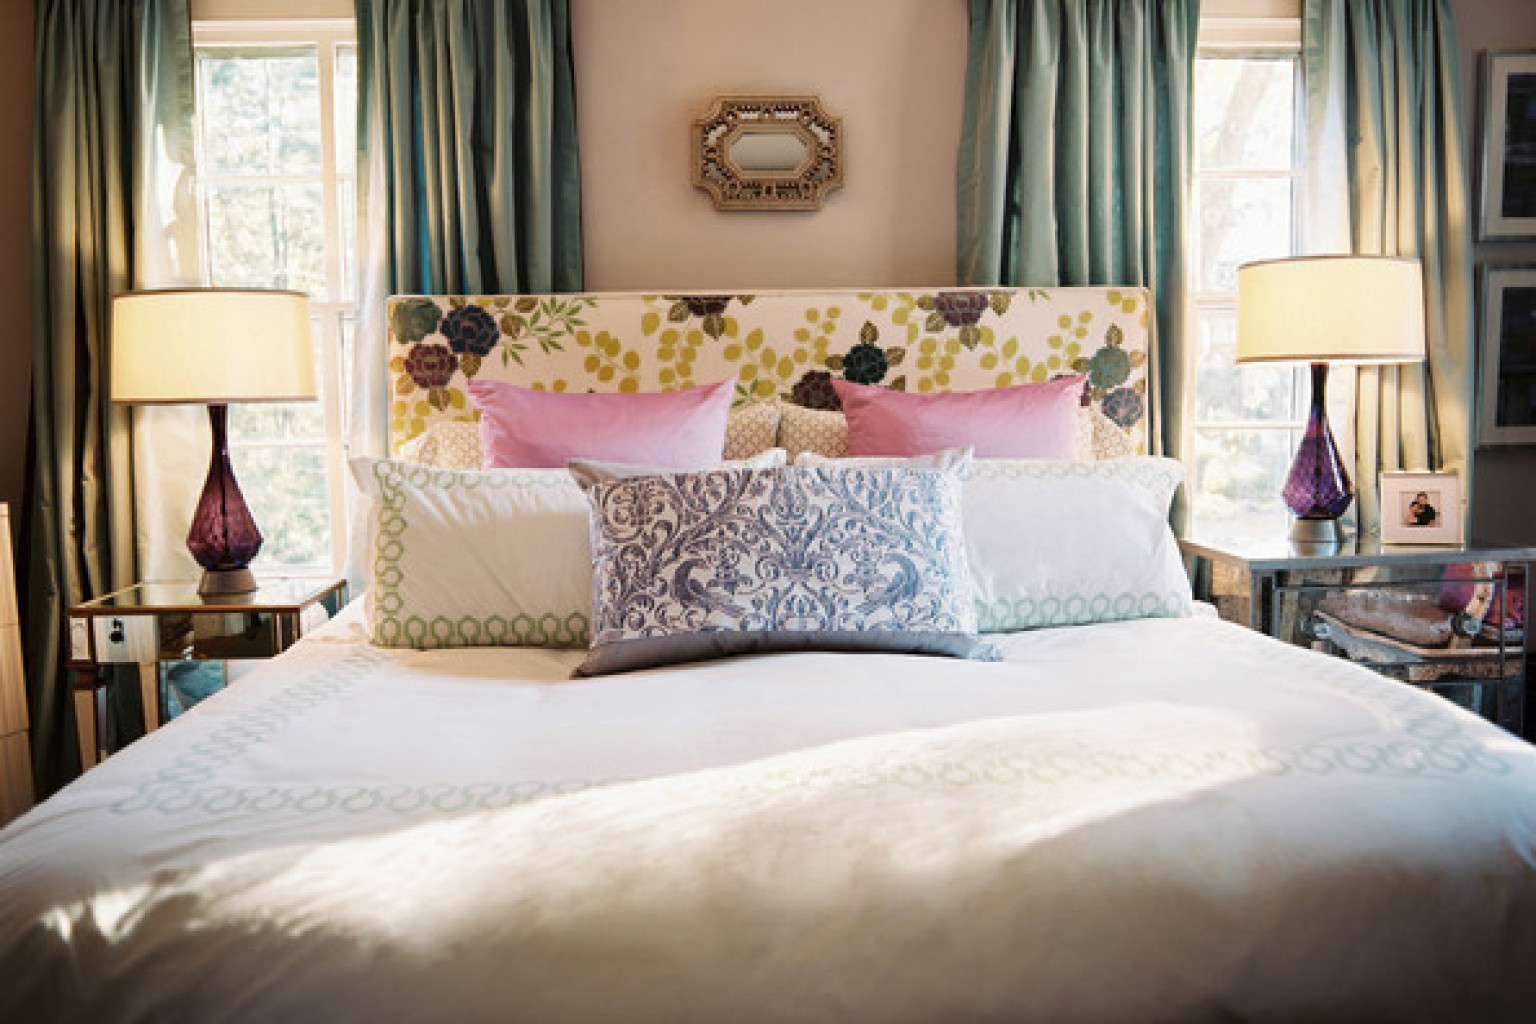 8 romantic bedroom ideas from lonny that will totally get How to make bedroom romantic